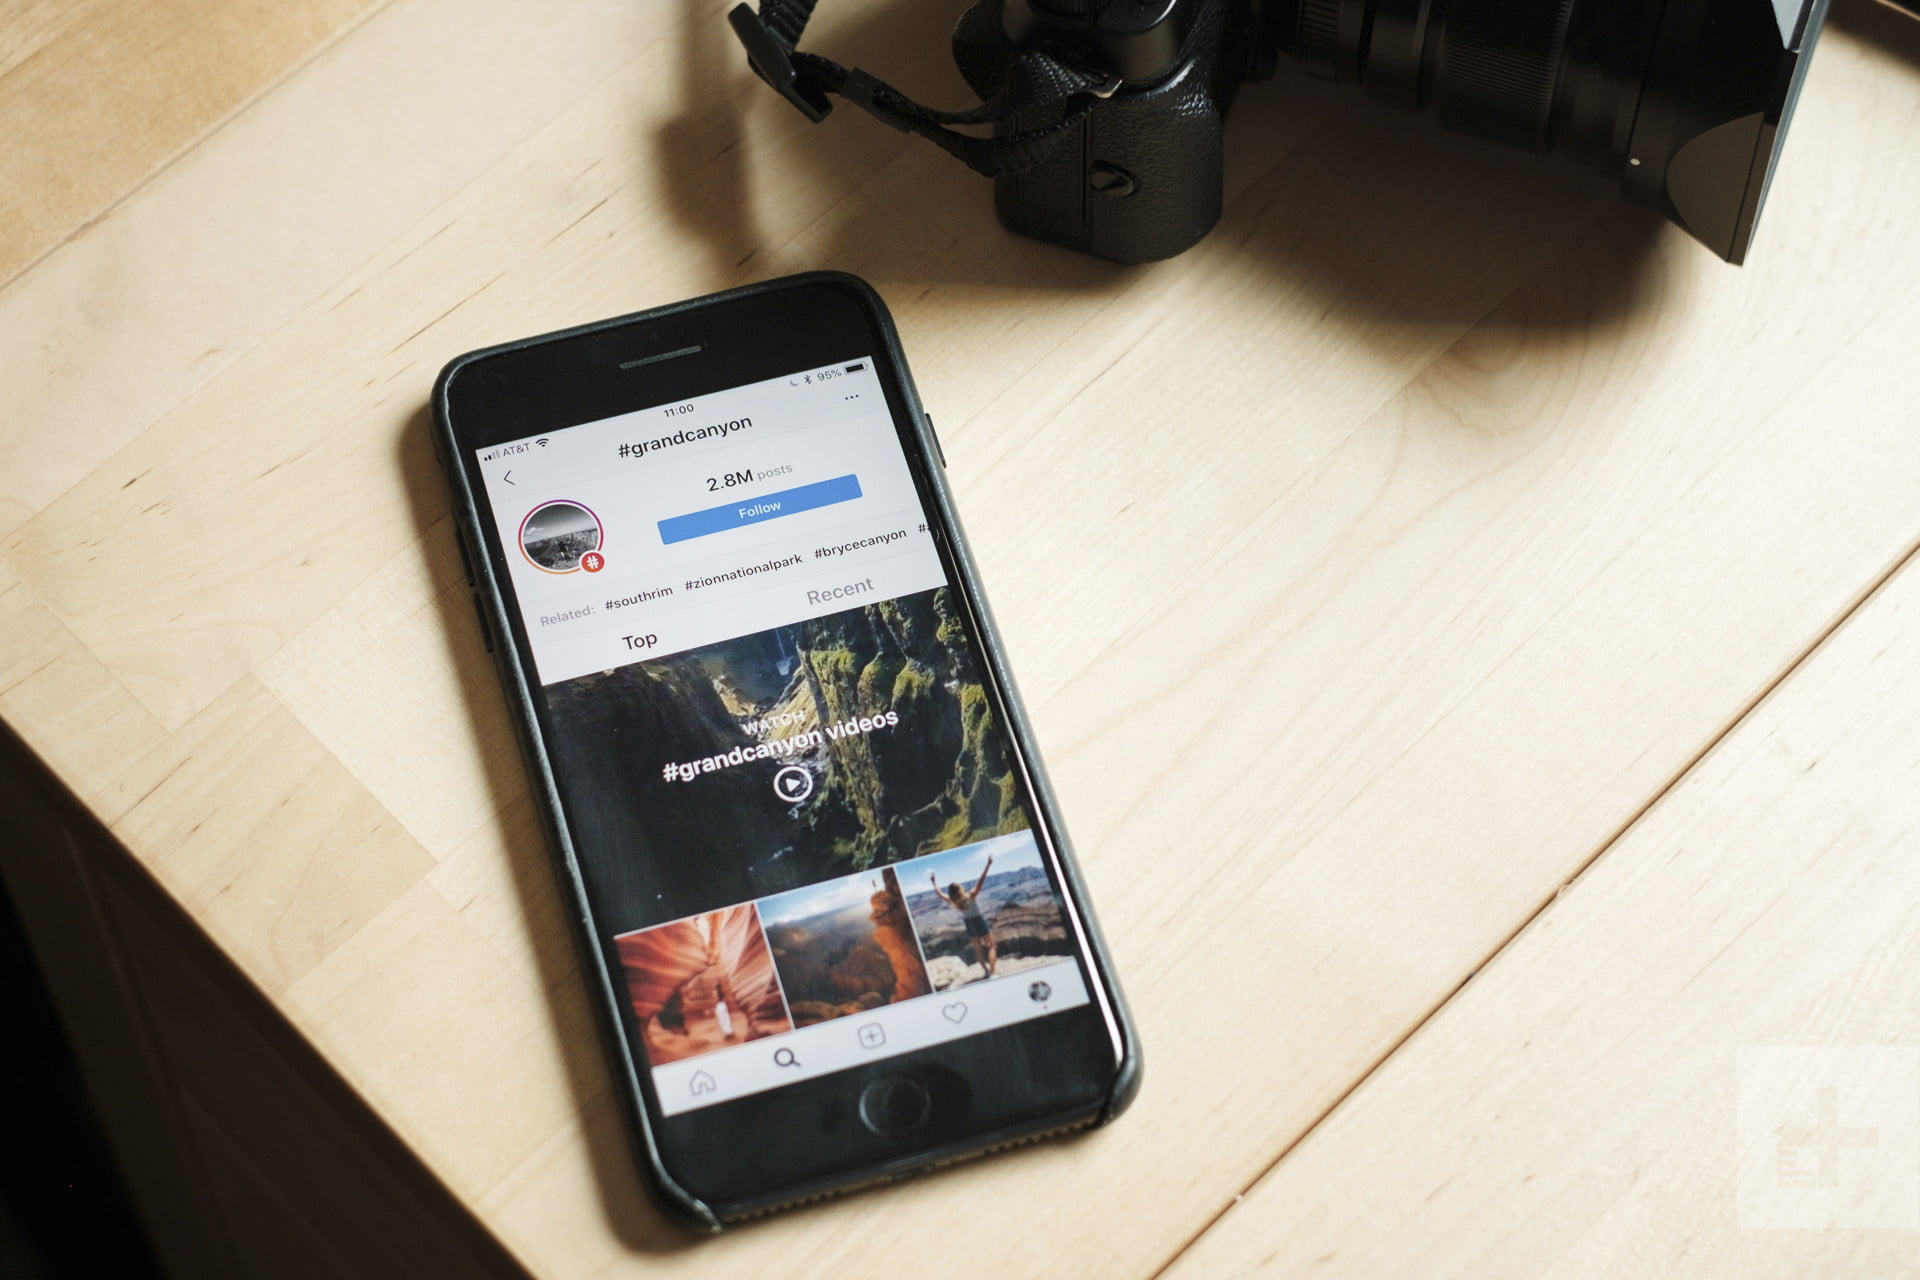 Instagram enhances midnight scrolls with dark mode — here's how to turn it on